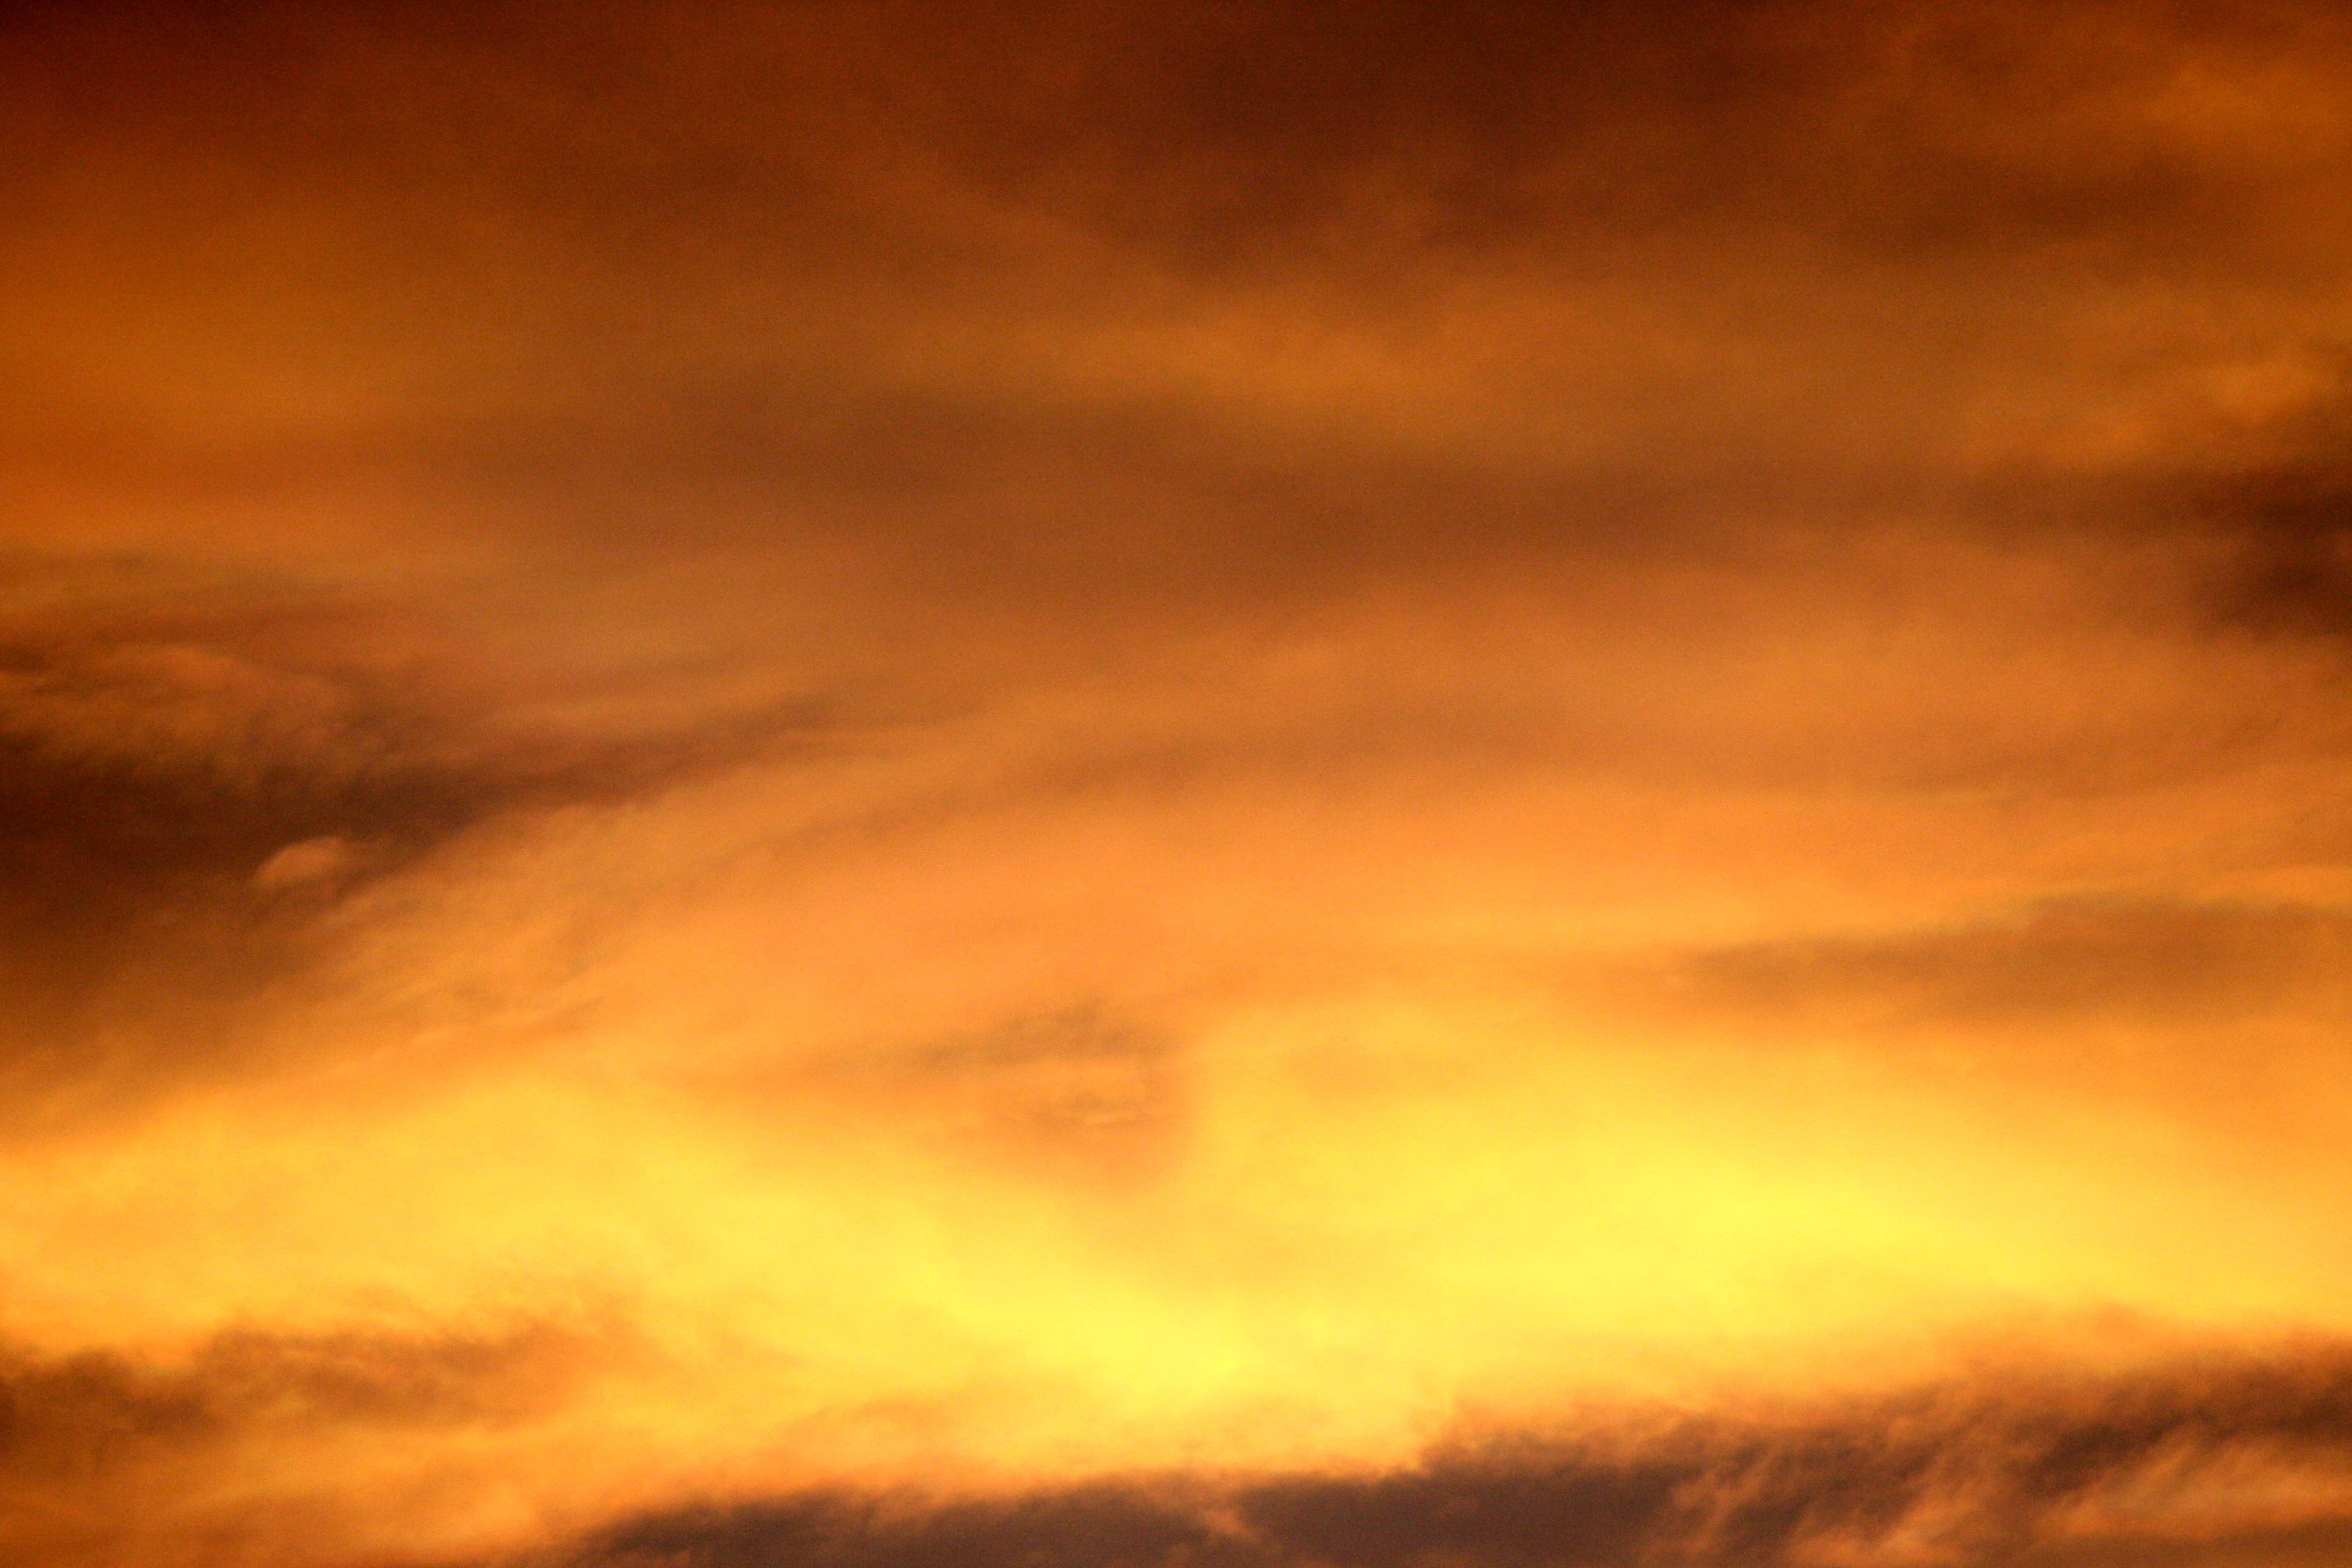 Sunset clouds picture free photograph photos public domain - Hd clouds for photoshop ...